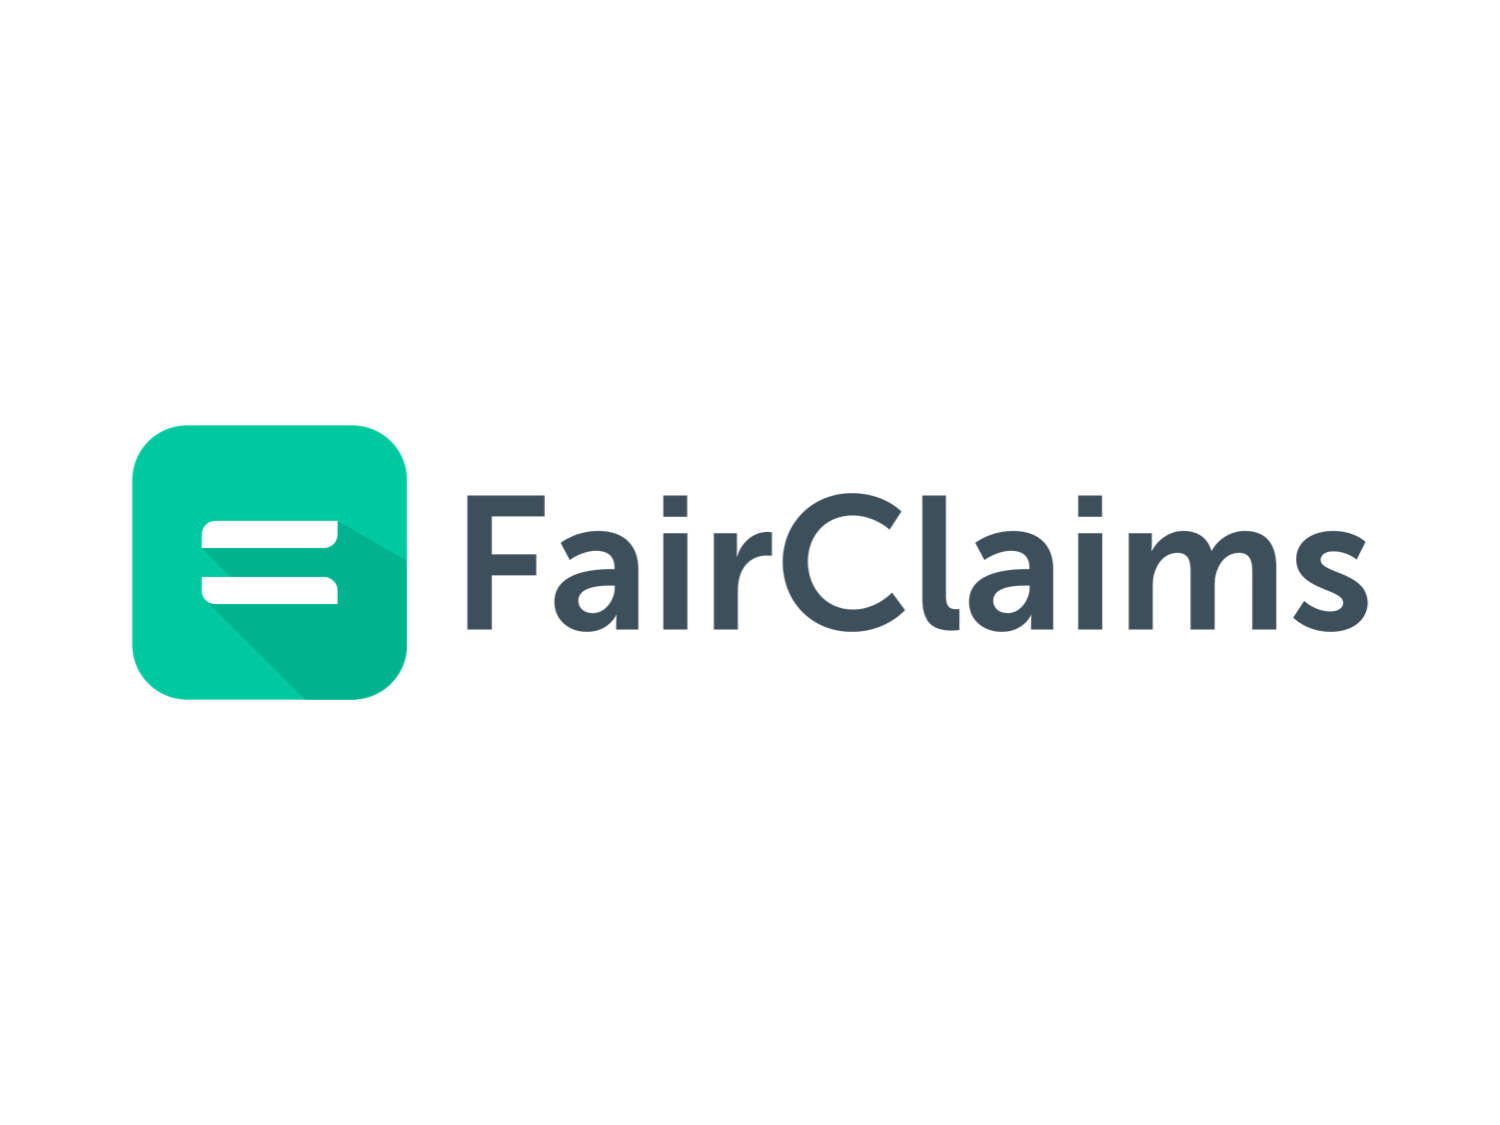 Fairclaims